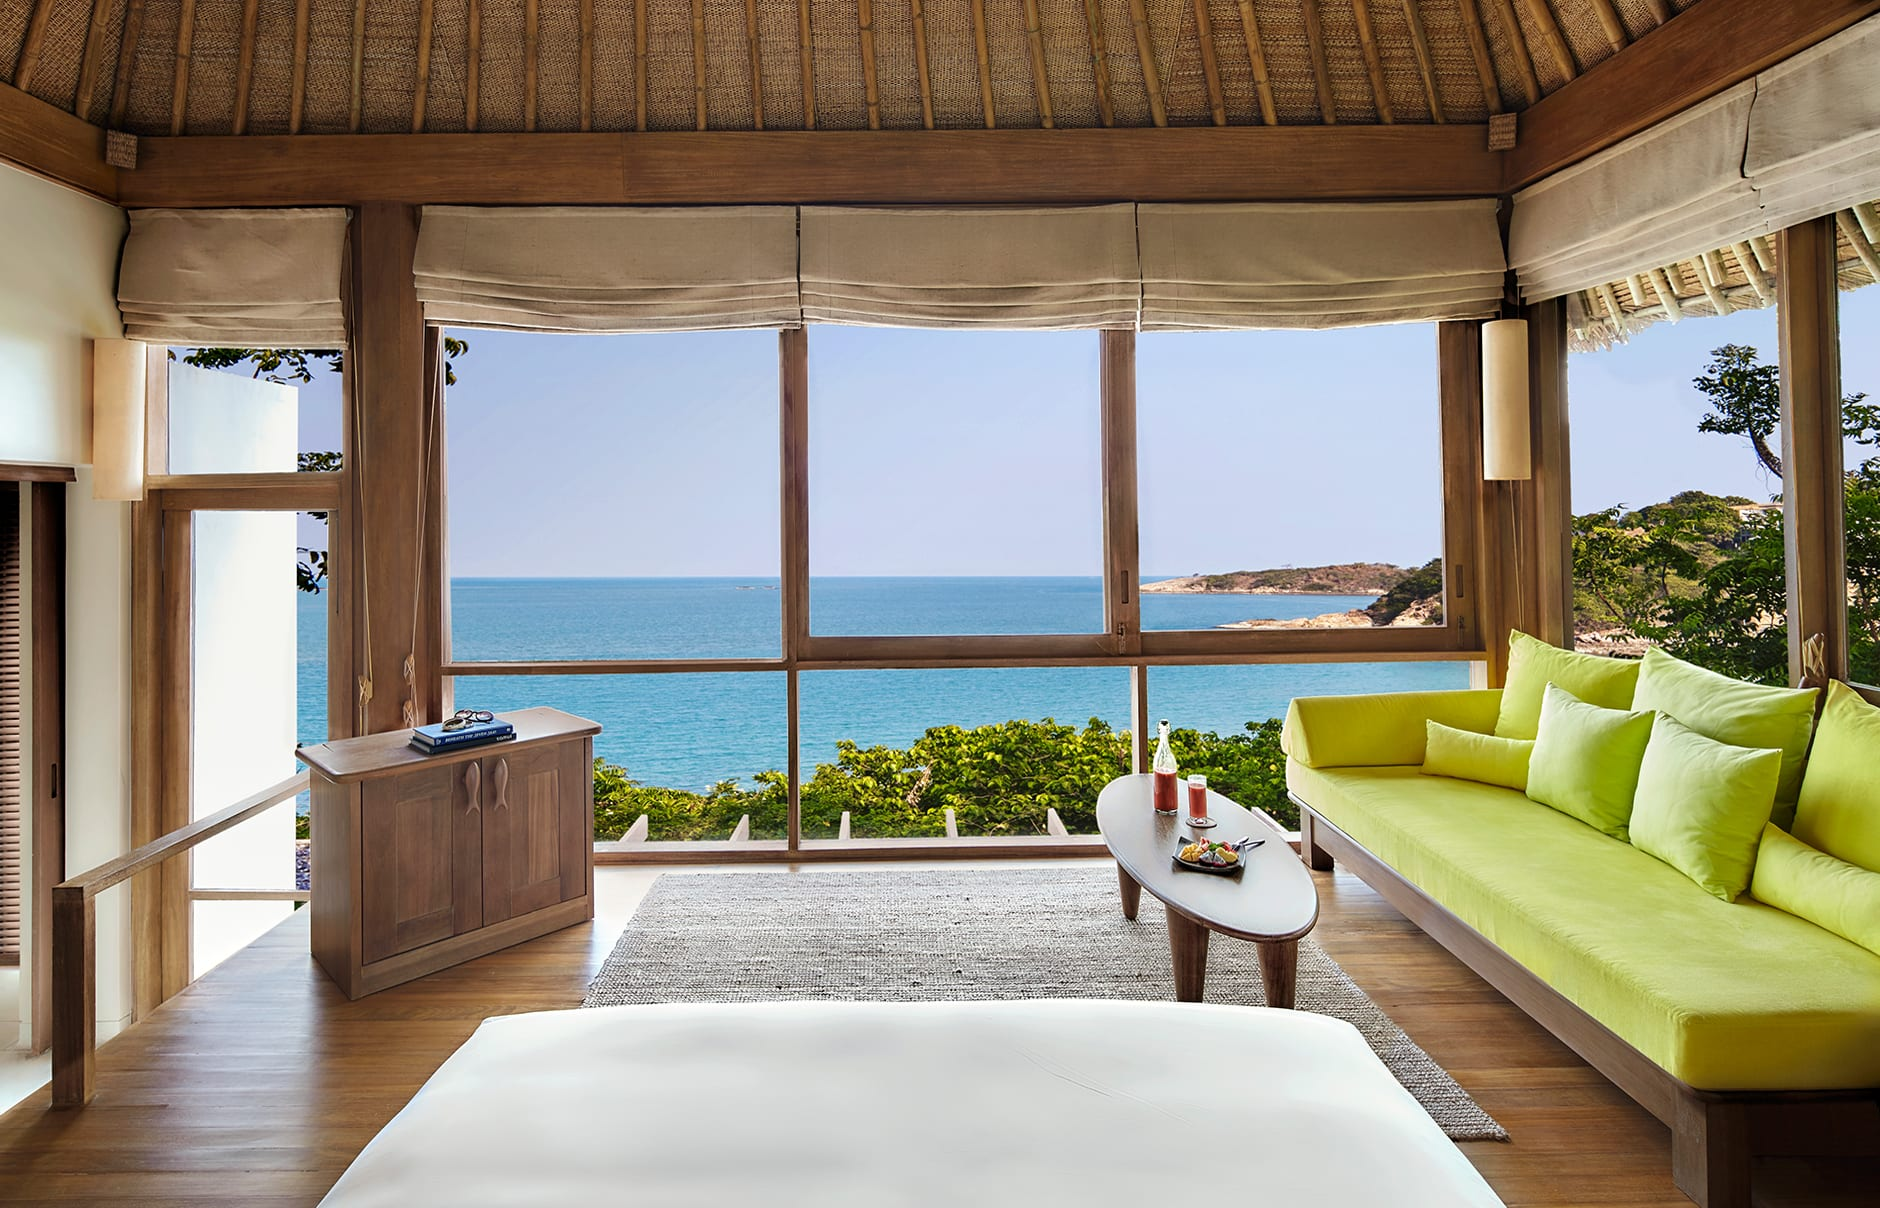 Ocean Front Pool Villa. Six Senses Samui, Thailand. Hotel Review by TravelPlusStyle. Photo © Six Senses Resorts & Spas